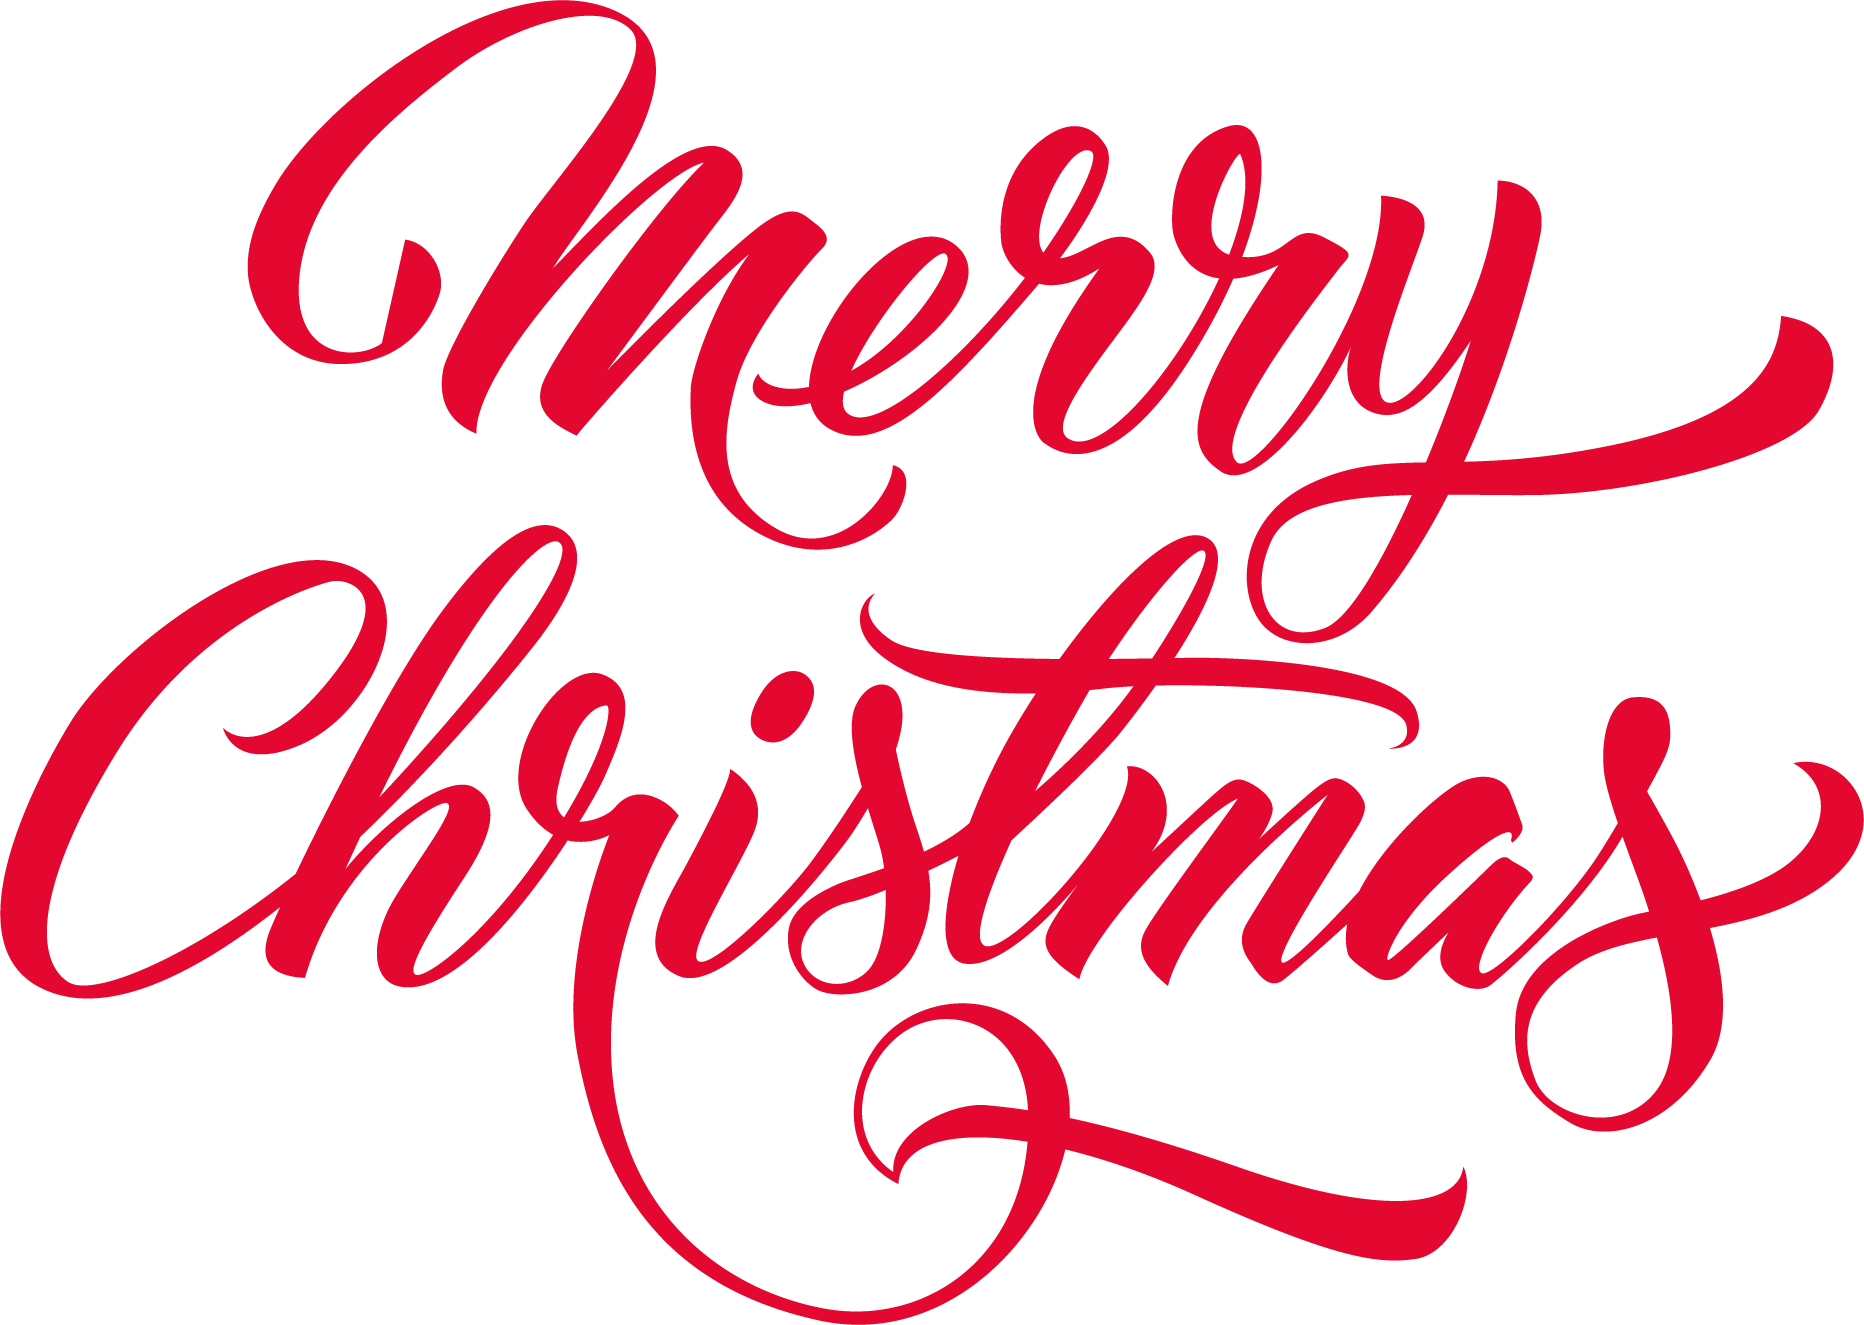 Merry christmas png pink. Images in collection page